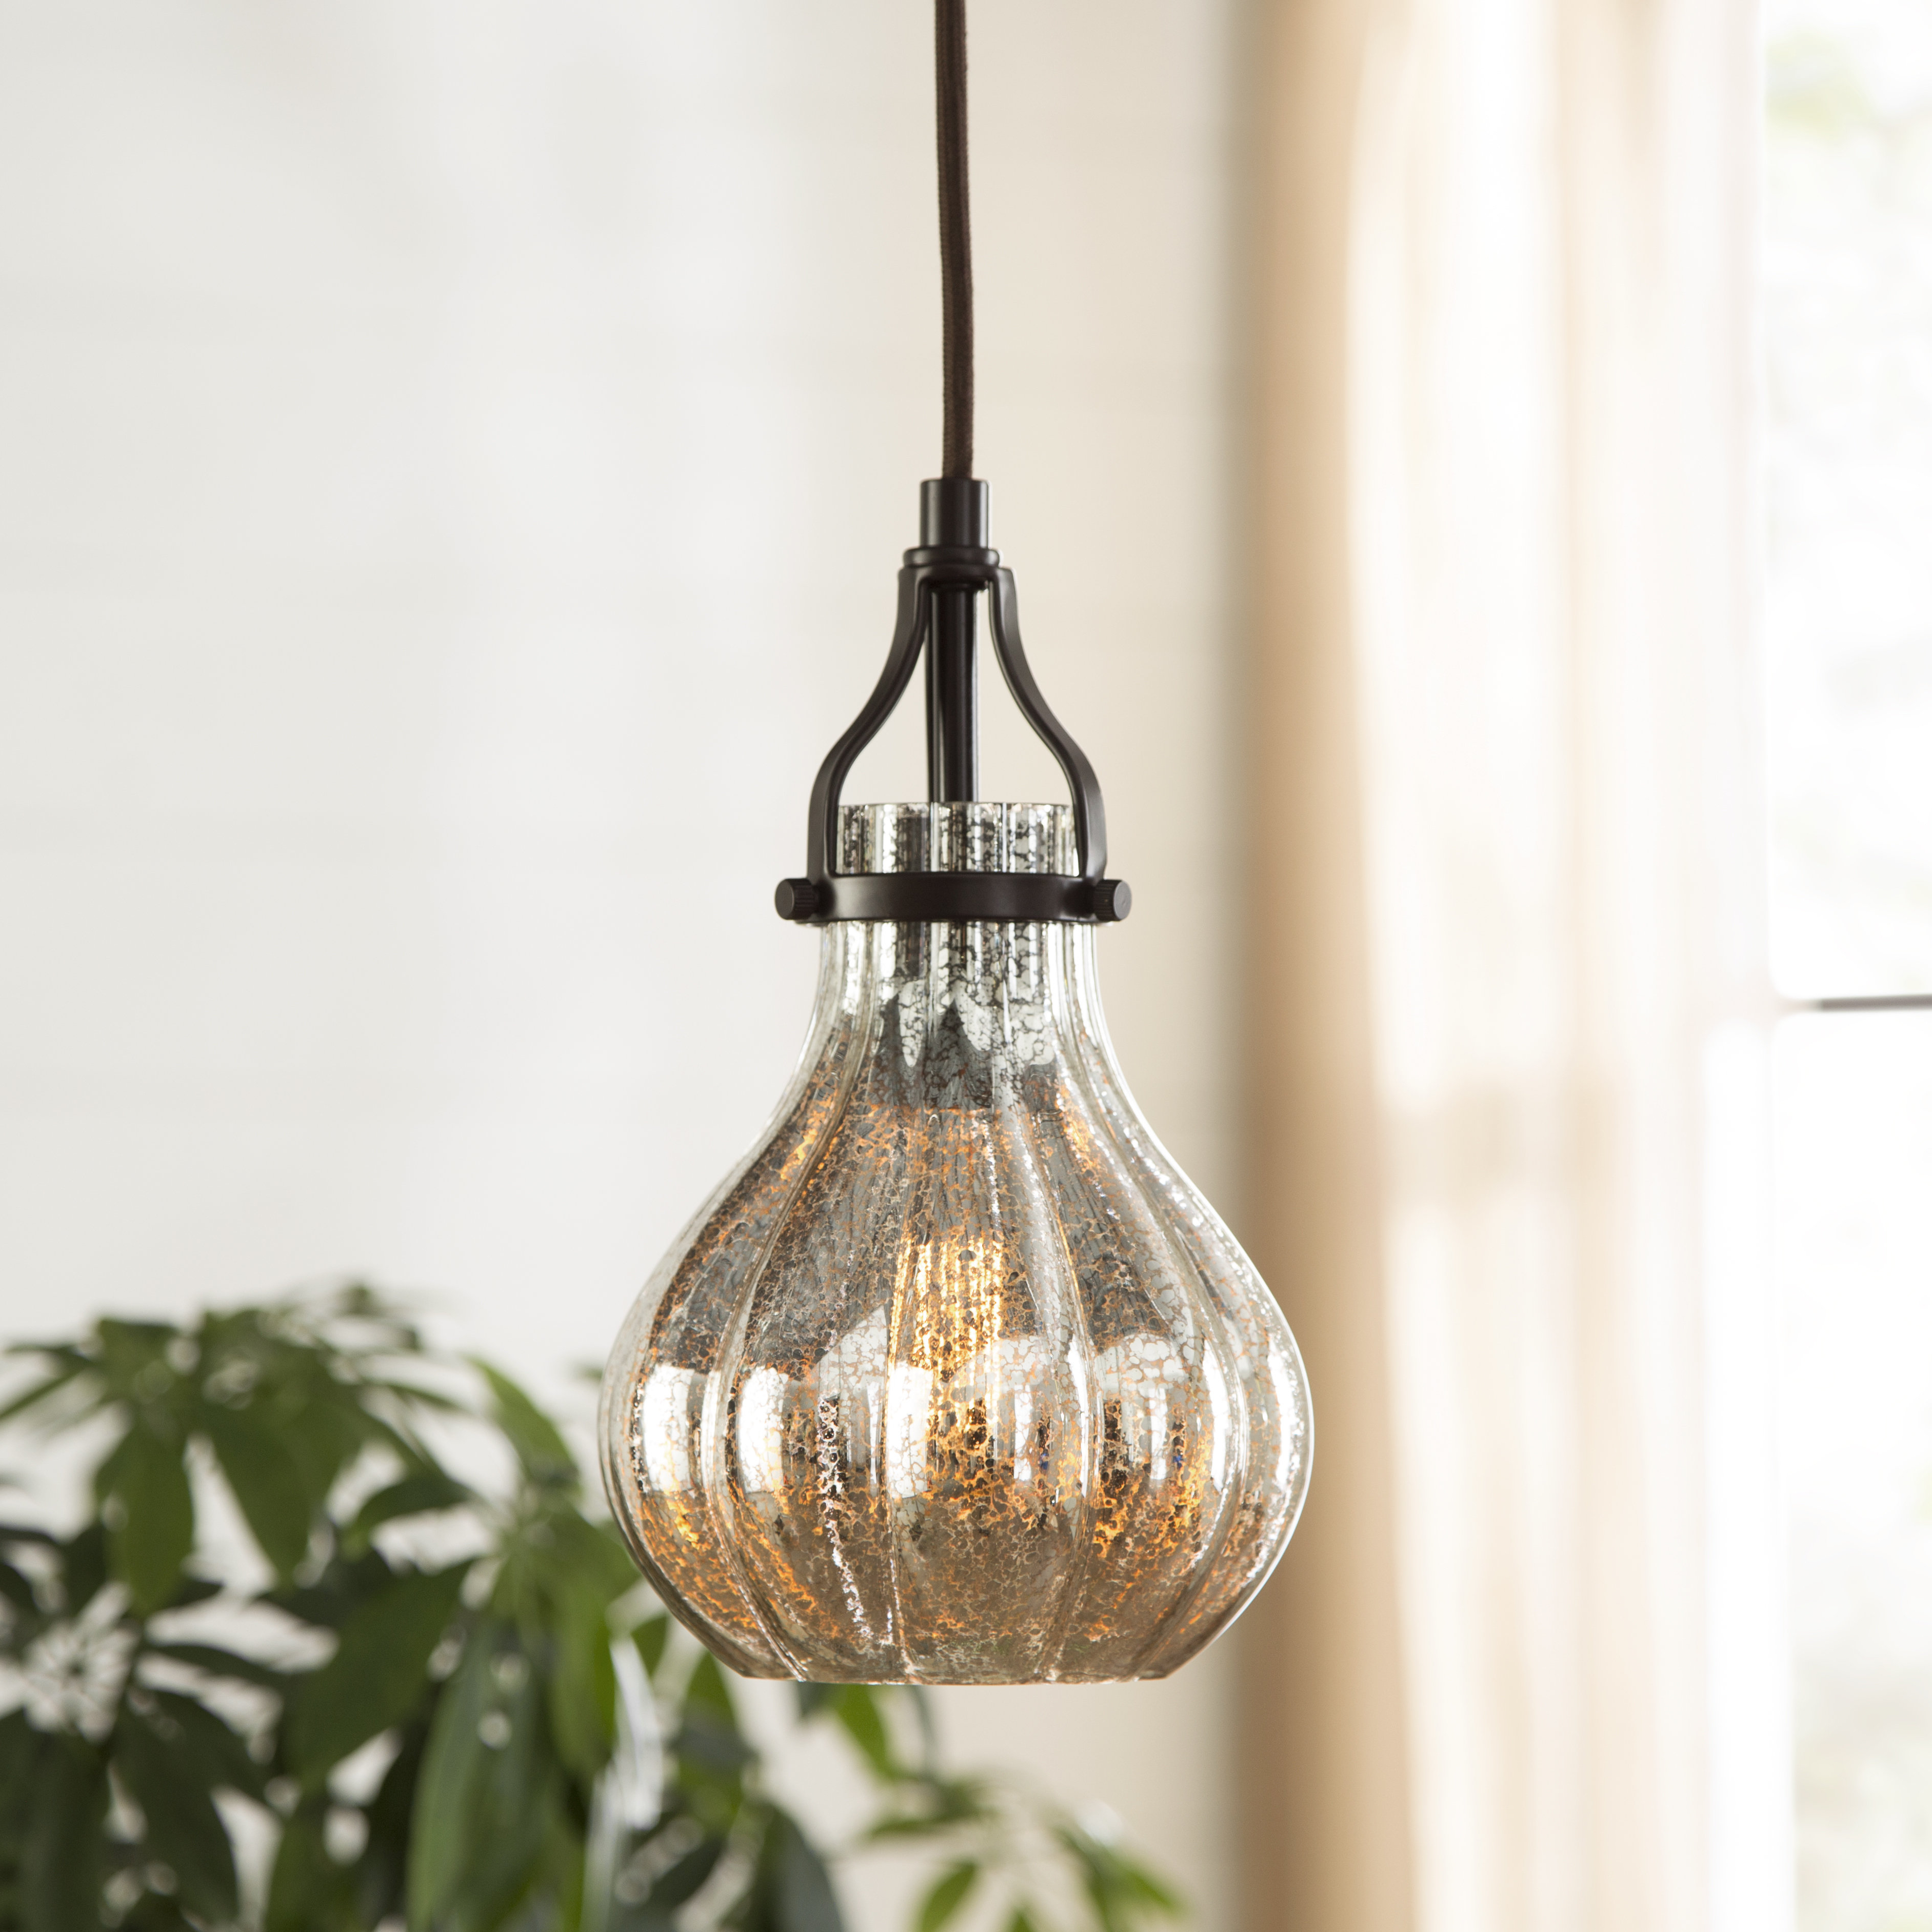 Orofino 1 Light Single Teardrop Pendant Intended For Well Liked Abordale 1 Light Single Dome Pendants (View 14 of 25)